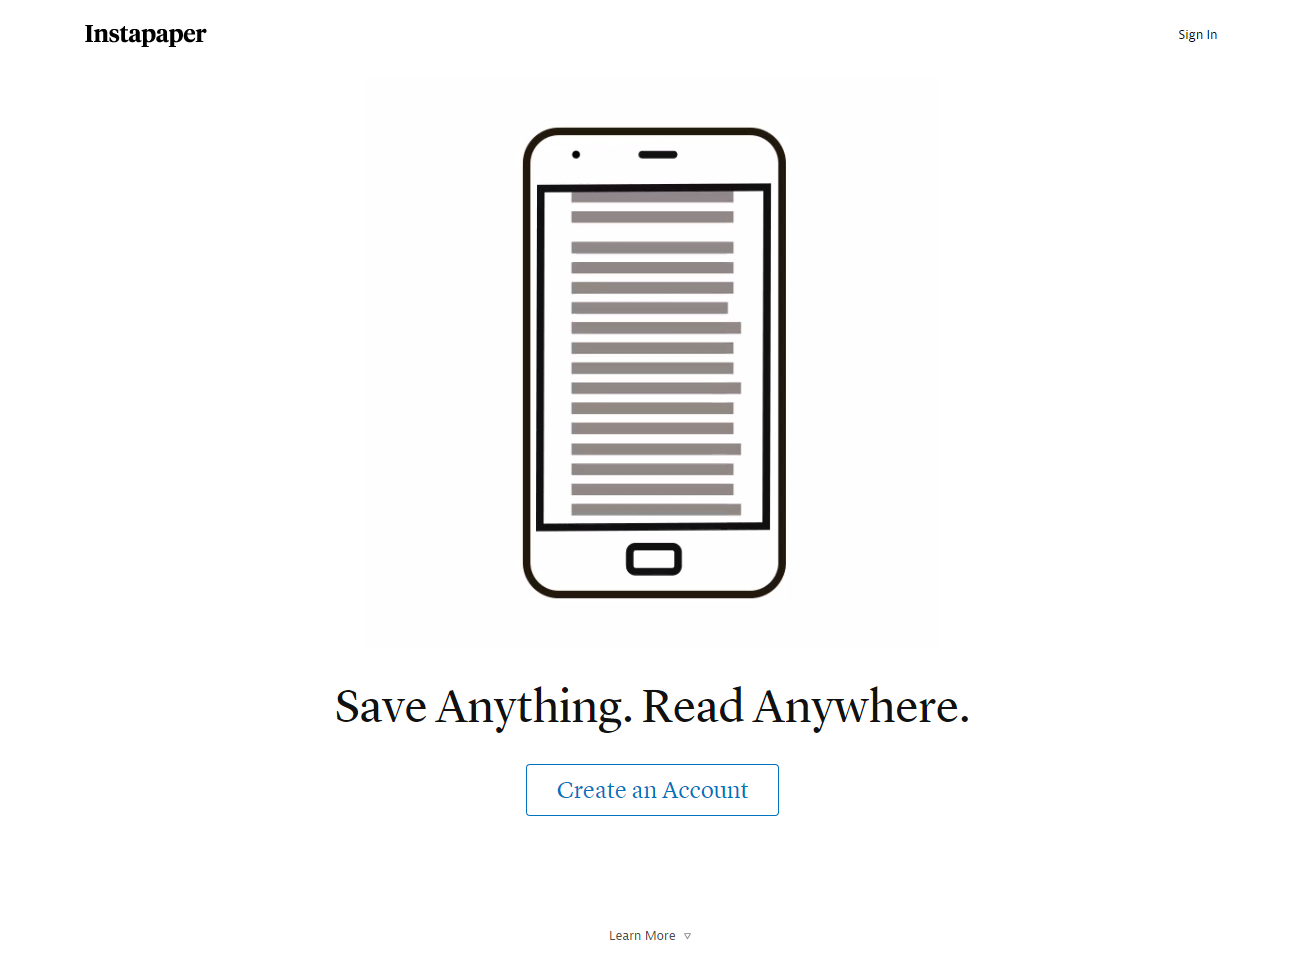 Landing page ideas use white space